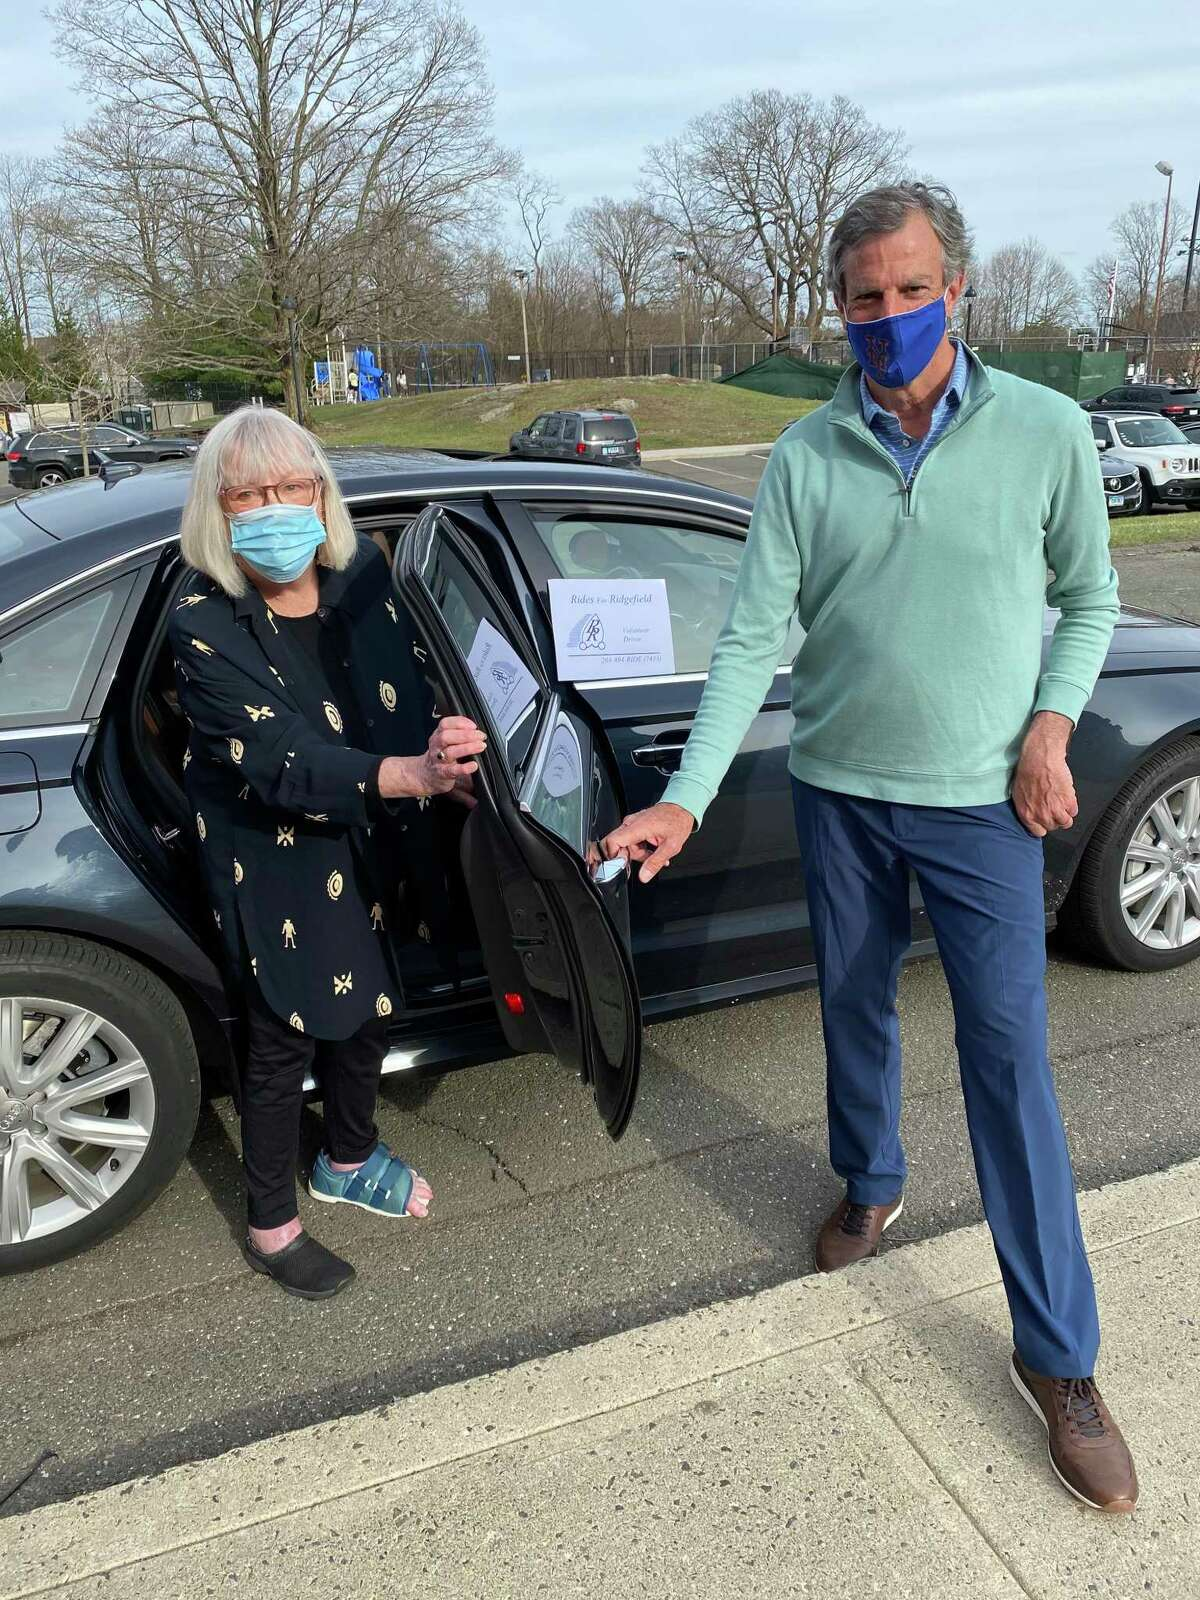 Deborah Szwarce received a ride from volunteer driver Jeff Goetz to get to her COVID-19 vaccine appointment at the now defunct Yanity Gym clinic. Goetz was one of four volunteers who chauffeured non-vaccinated riders to their vaccination appointments earlier this spring.